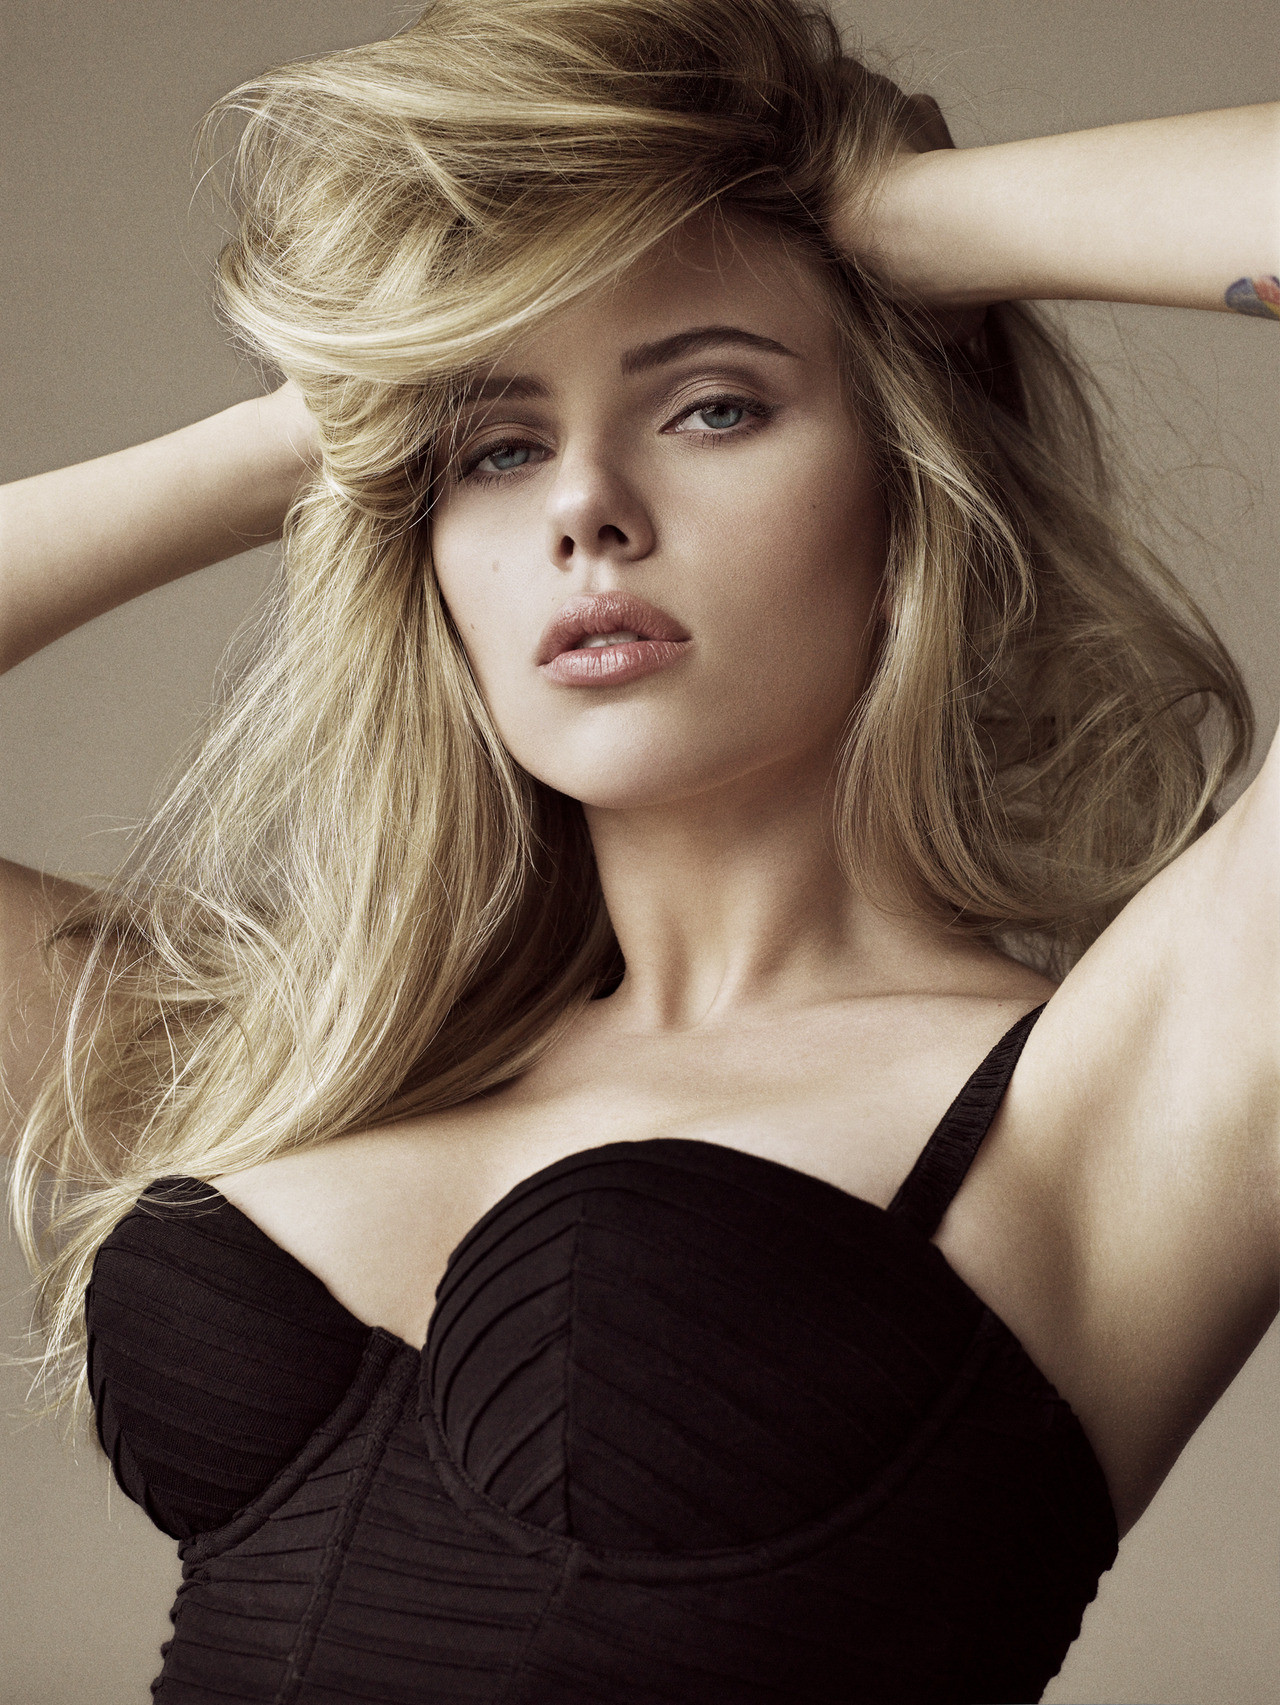 Beautiful-And-Sexy-Scarlett-Johansson Scarlett Johansson is the highest paid actress in 2018